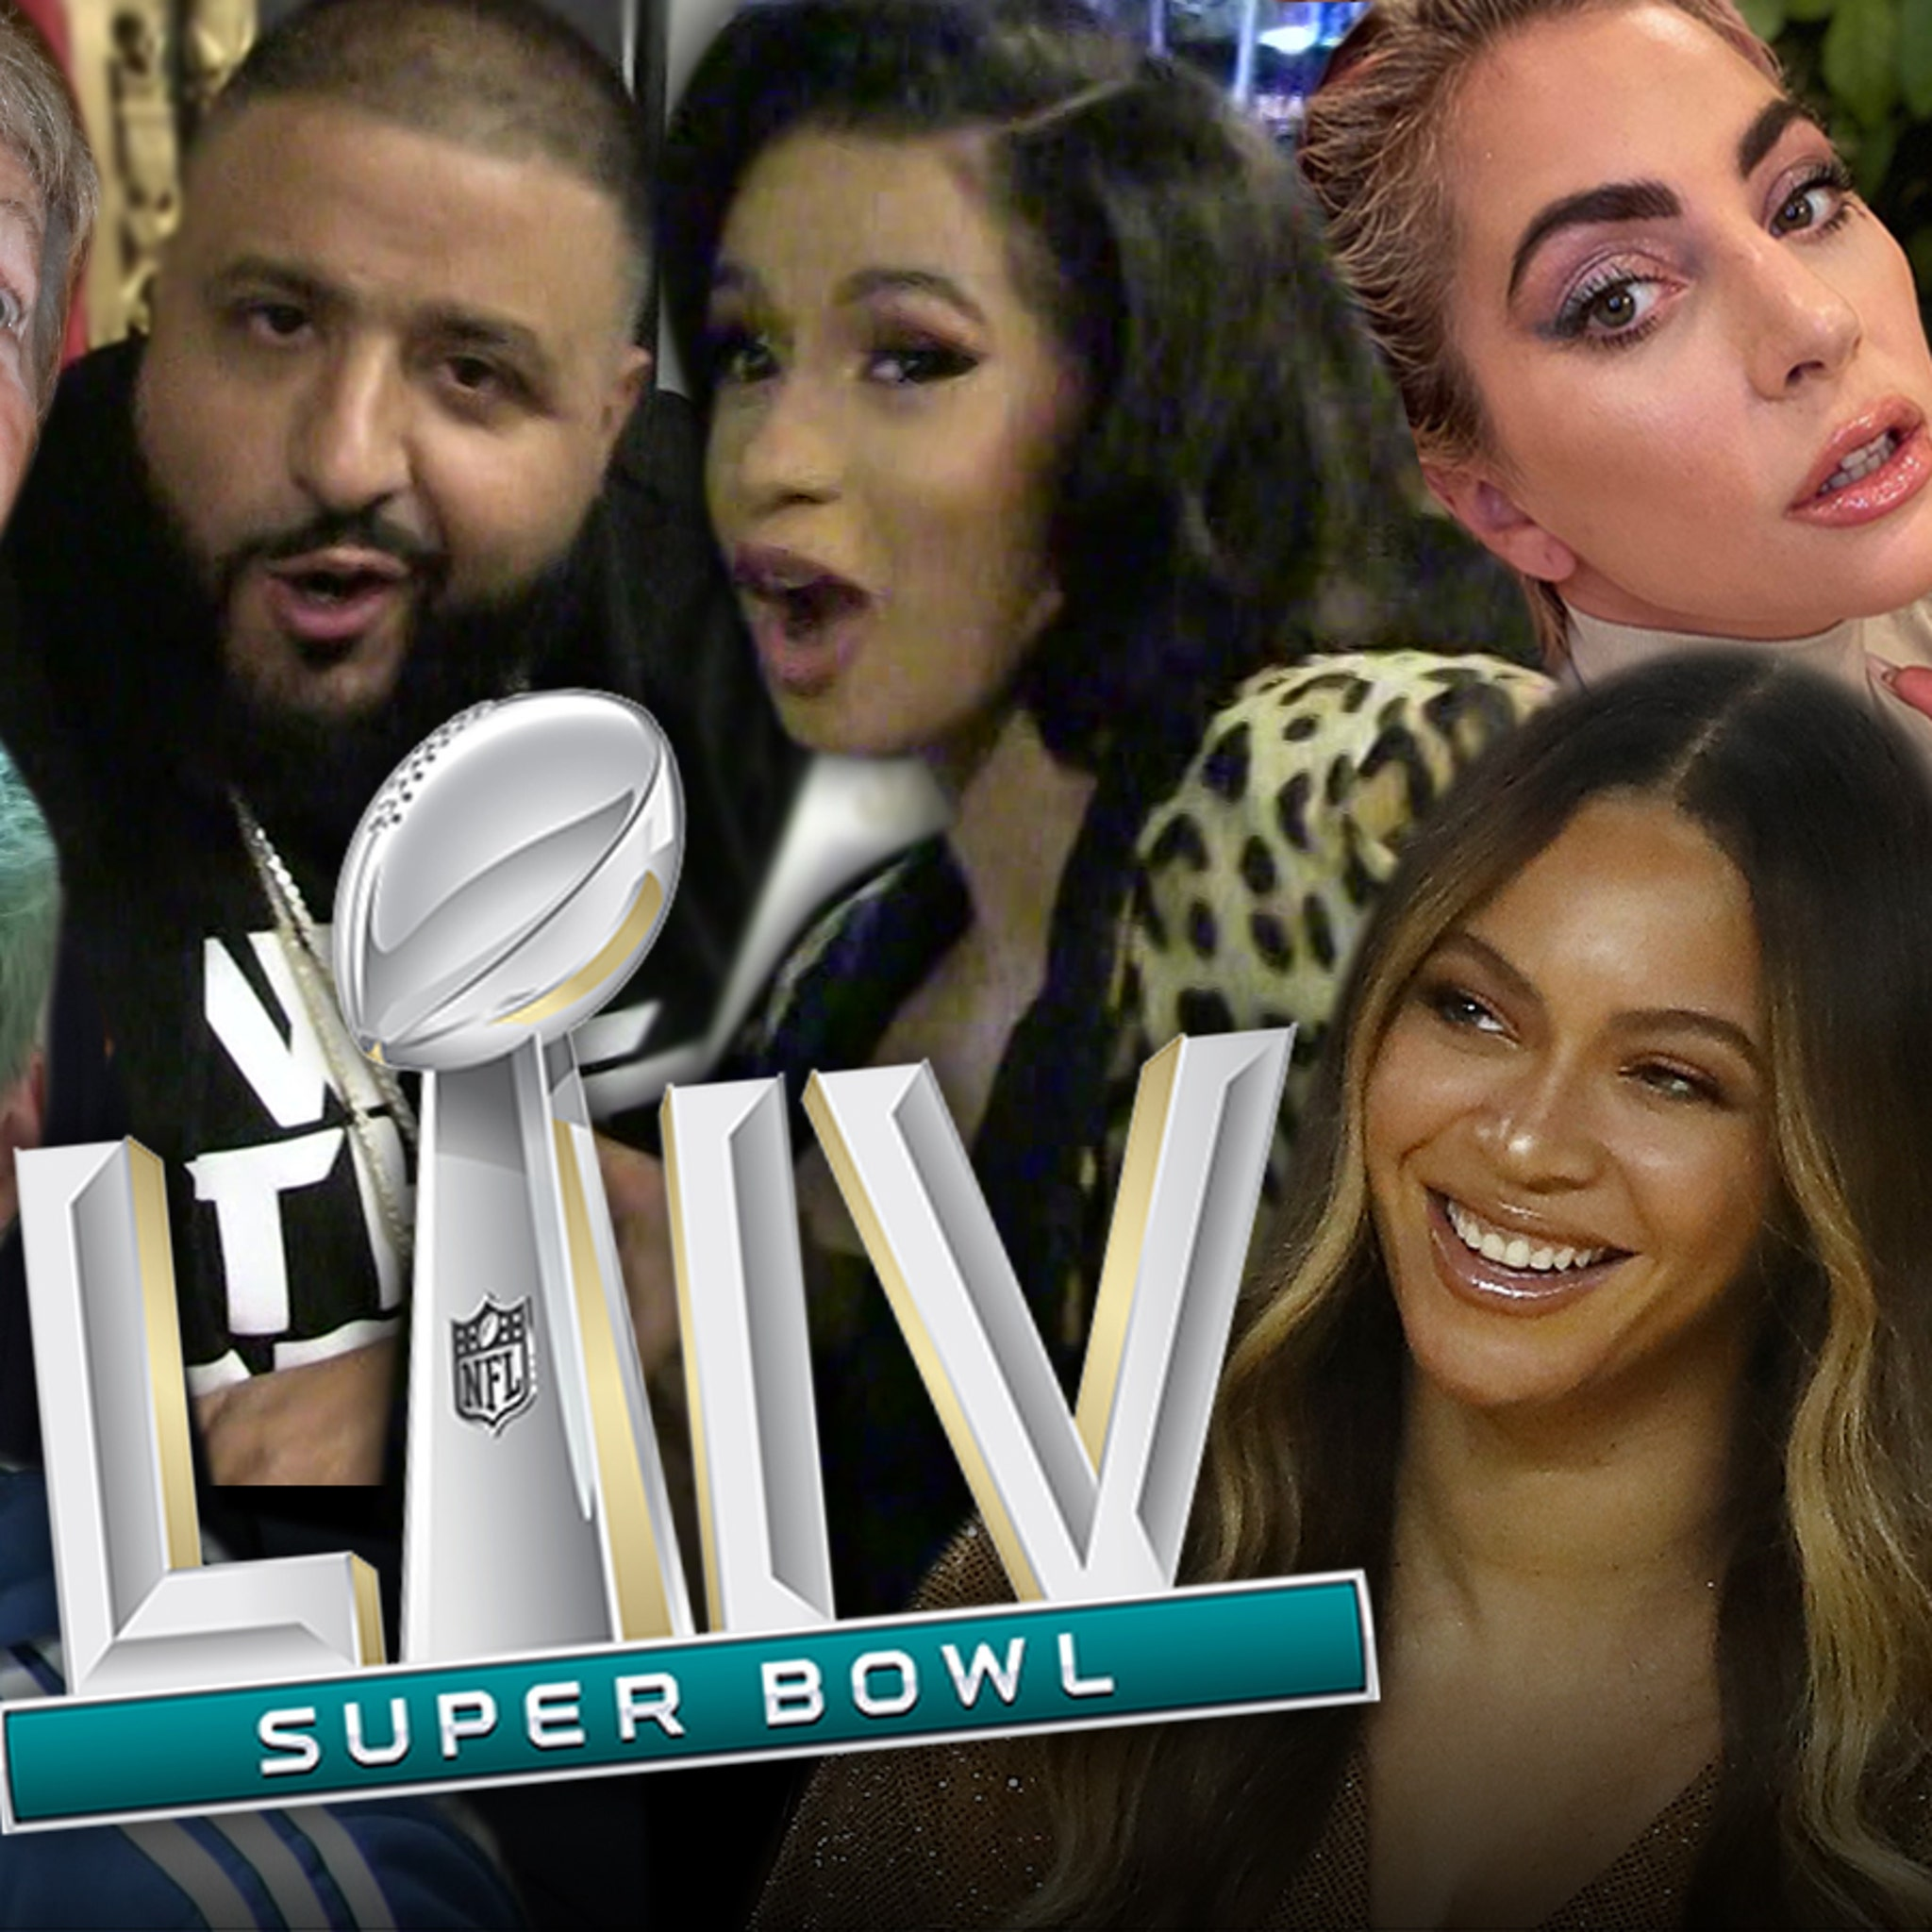 Celebs Going to Super Bowl Include Cardi B, Lady Gaga, Beyonce